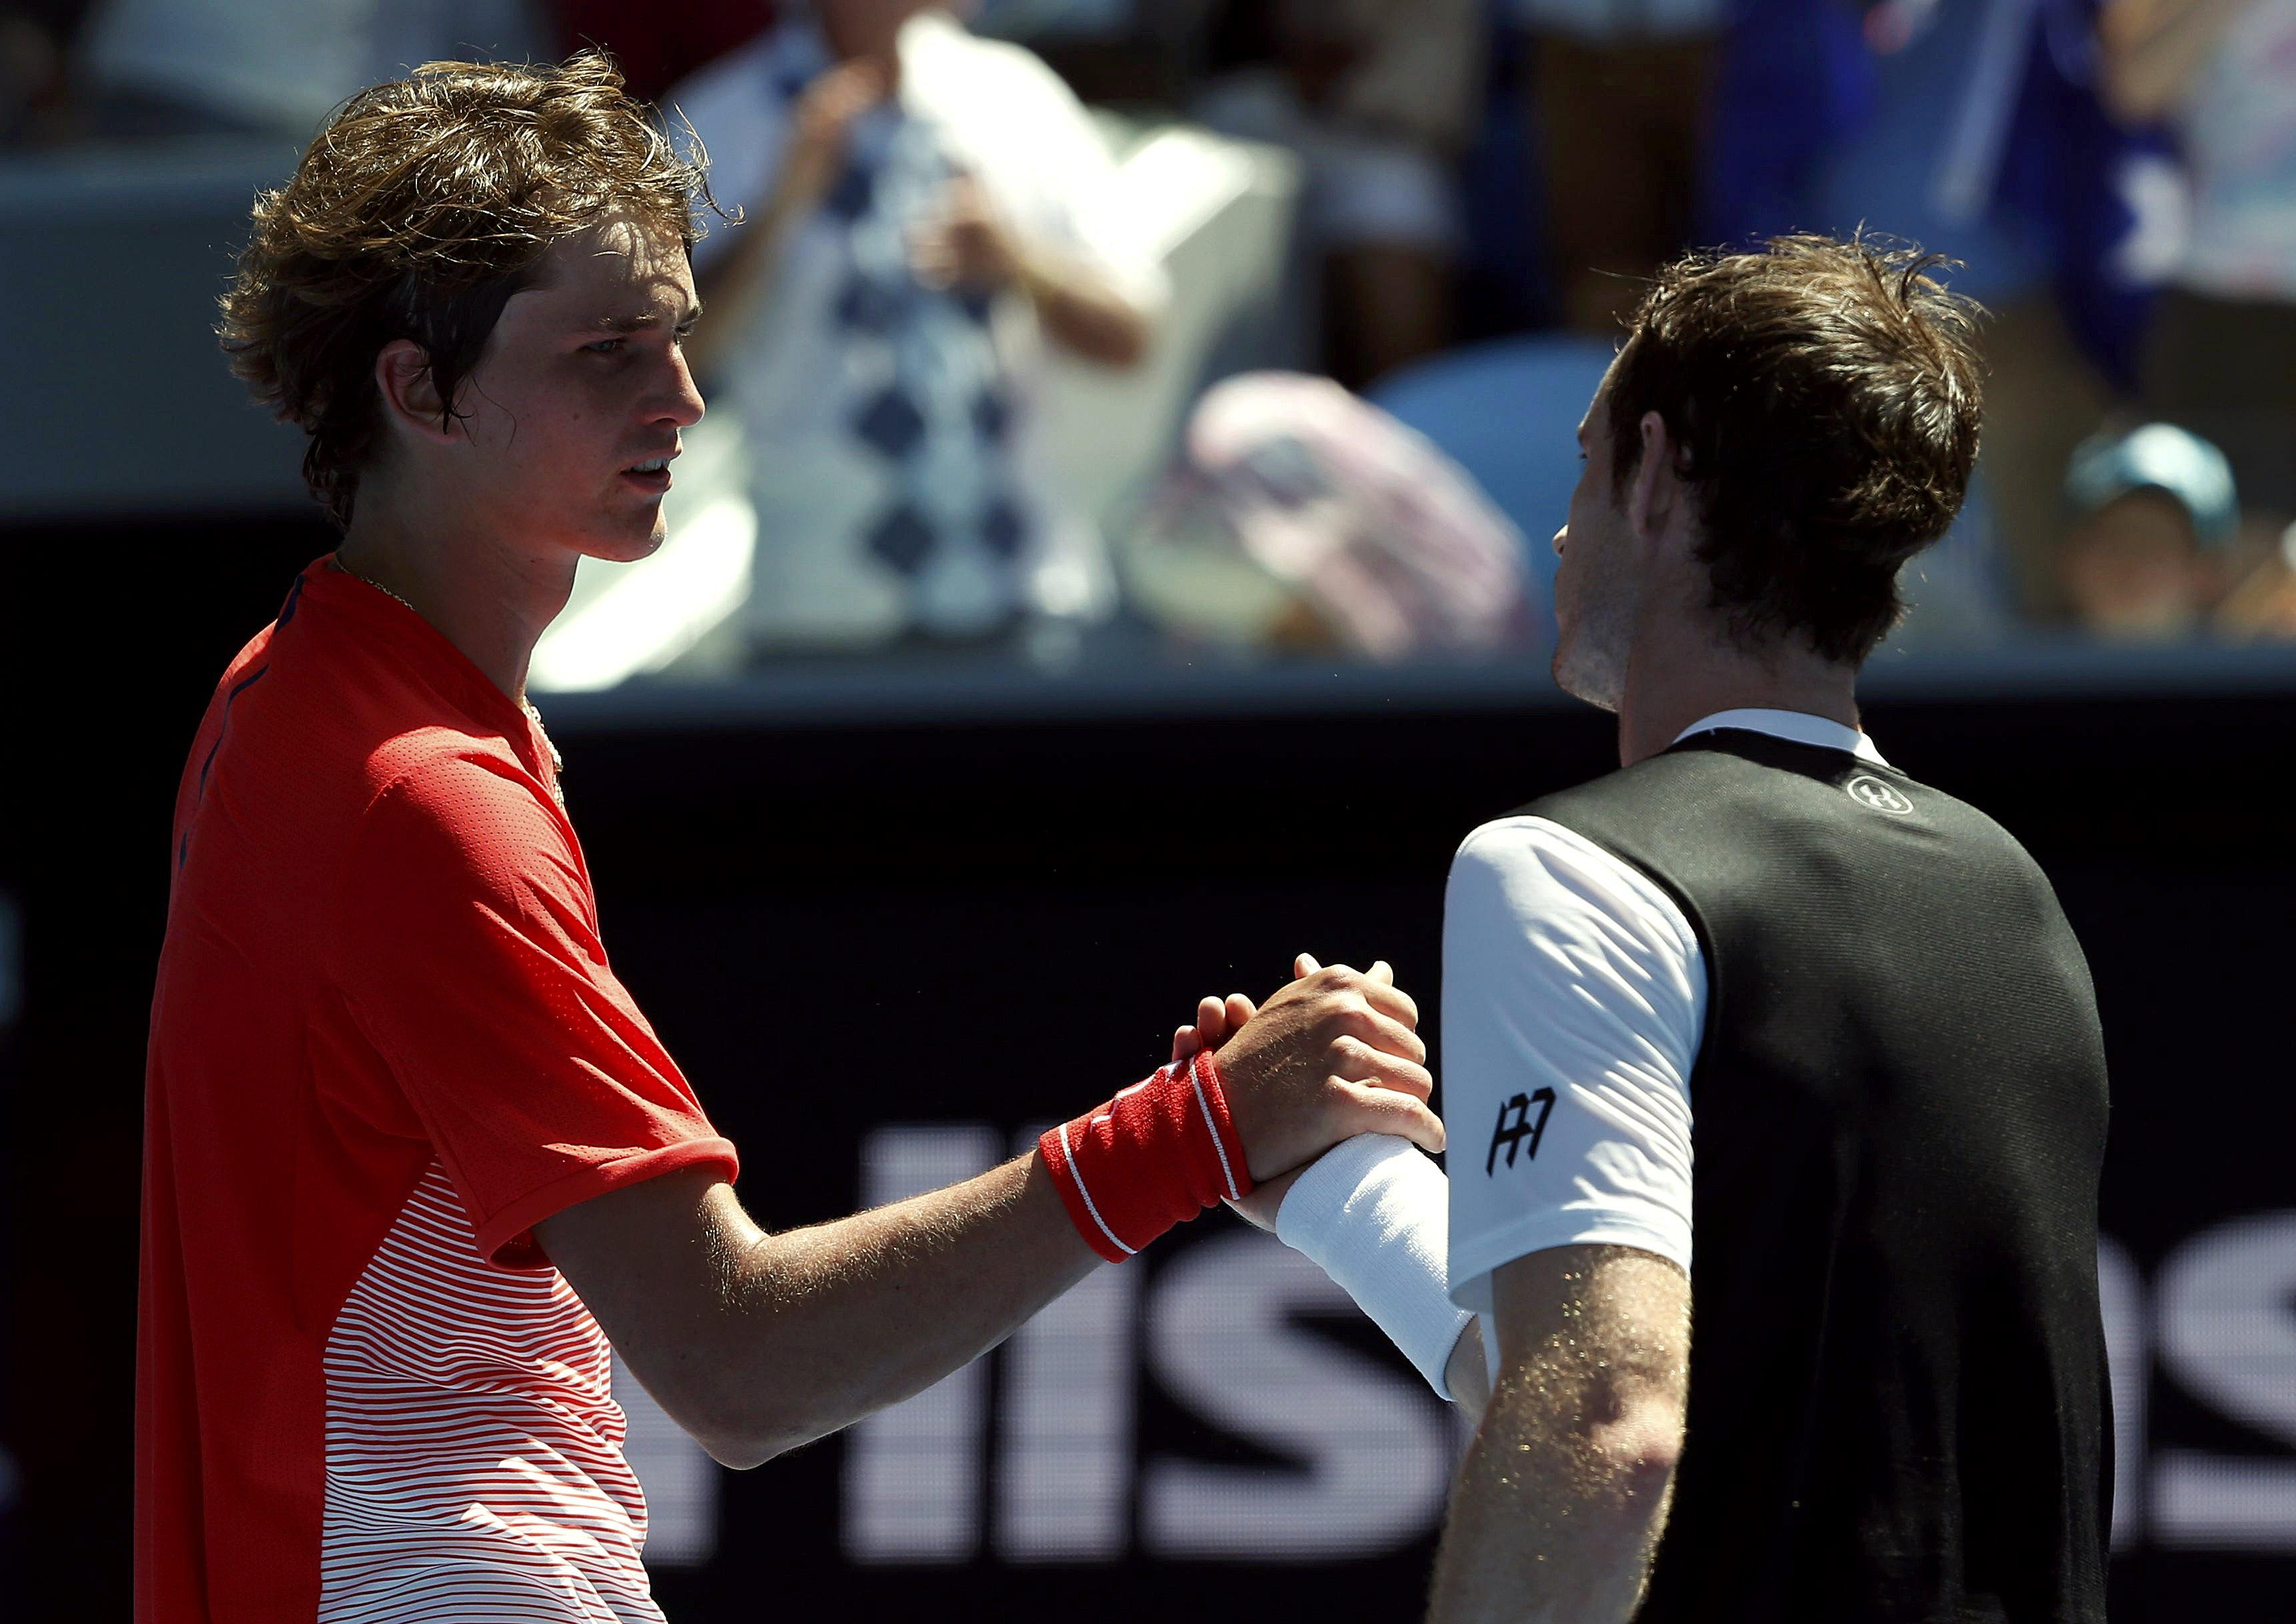 Murray beat Zverev in the first round of the Australian Open in 2016